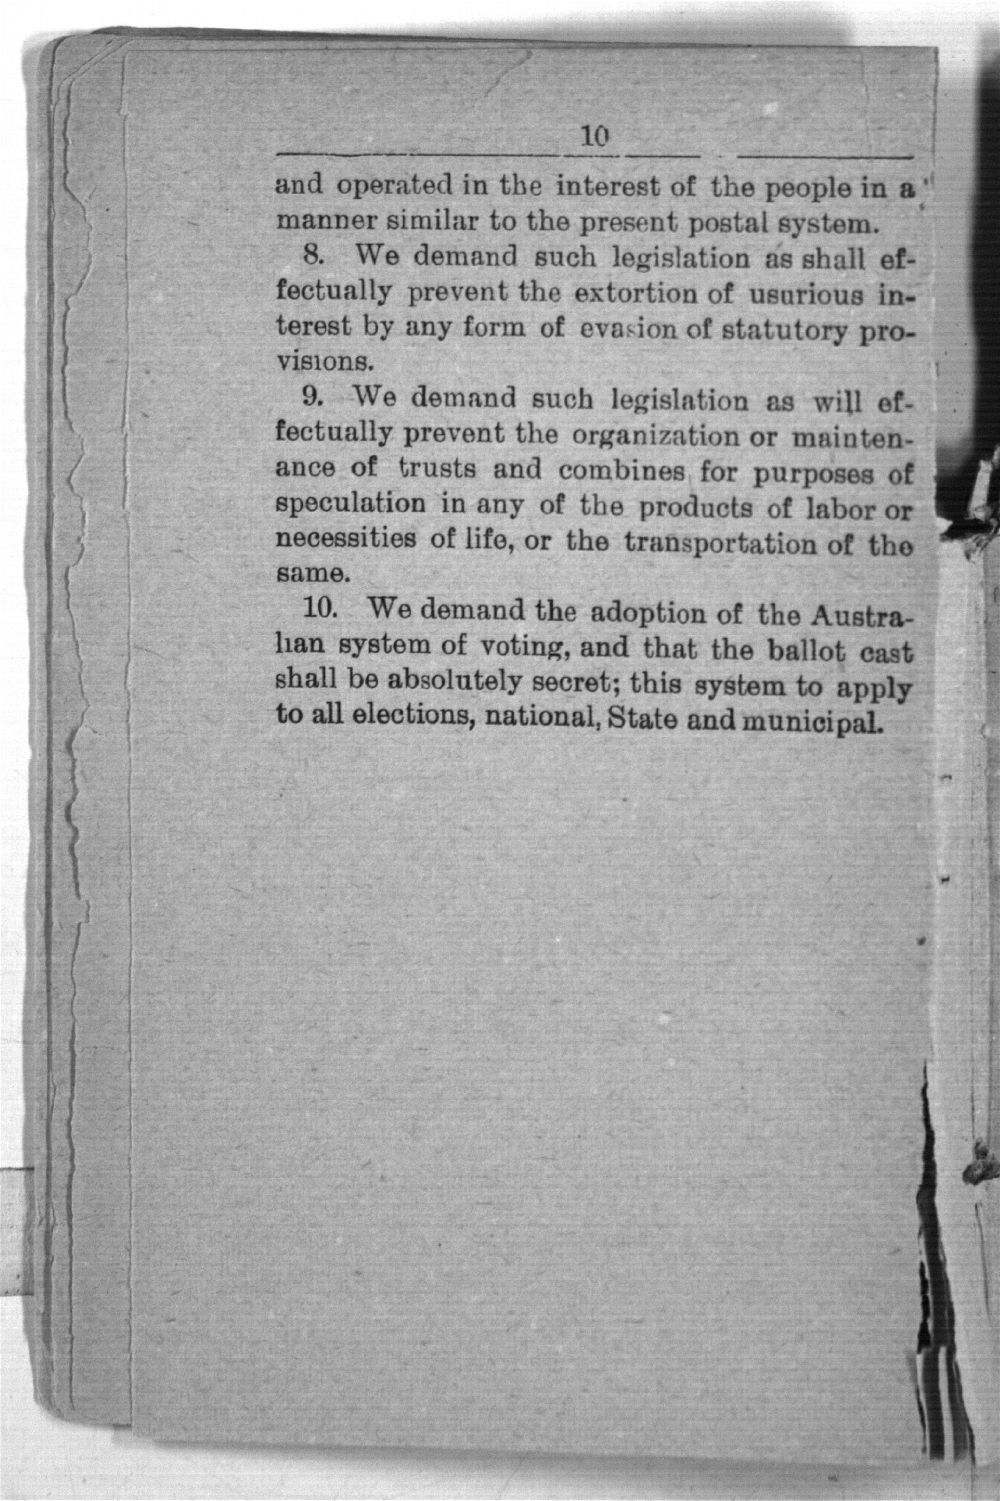 Declaration of principles, platform, constitution and by-laws of the National Citizens' Industrial Alliance and proceeding of the National Assembly held at Topeka, January 13 to 17, 1891 - 10